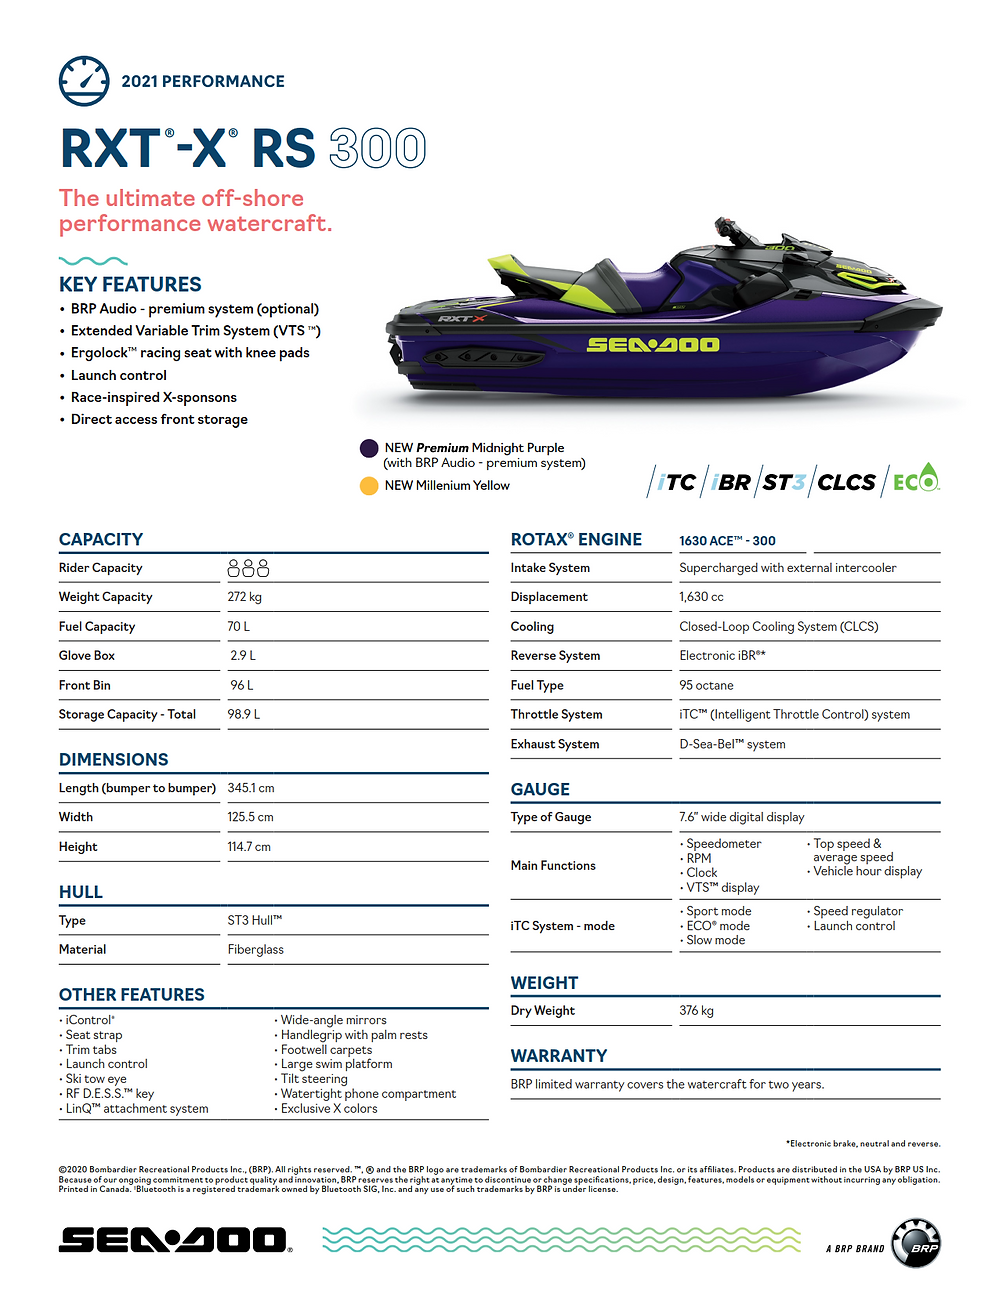 SeaDoo RXT X RS 300.png